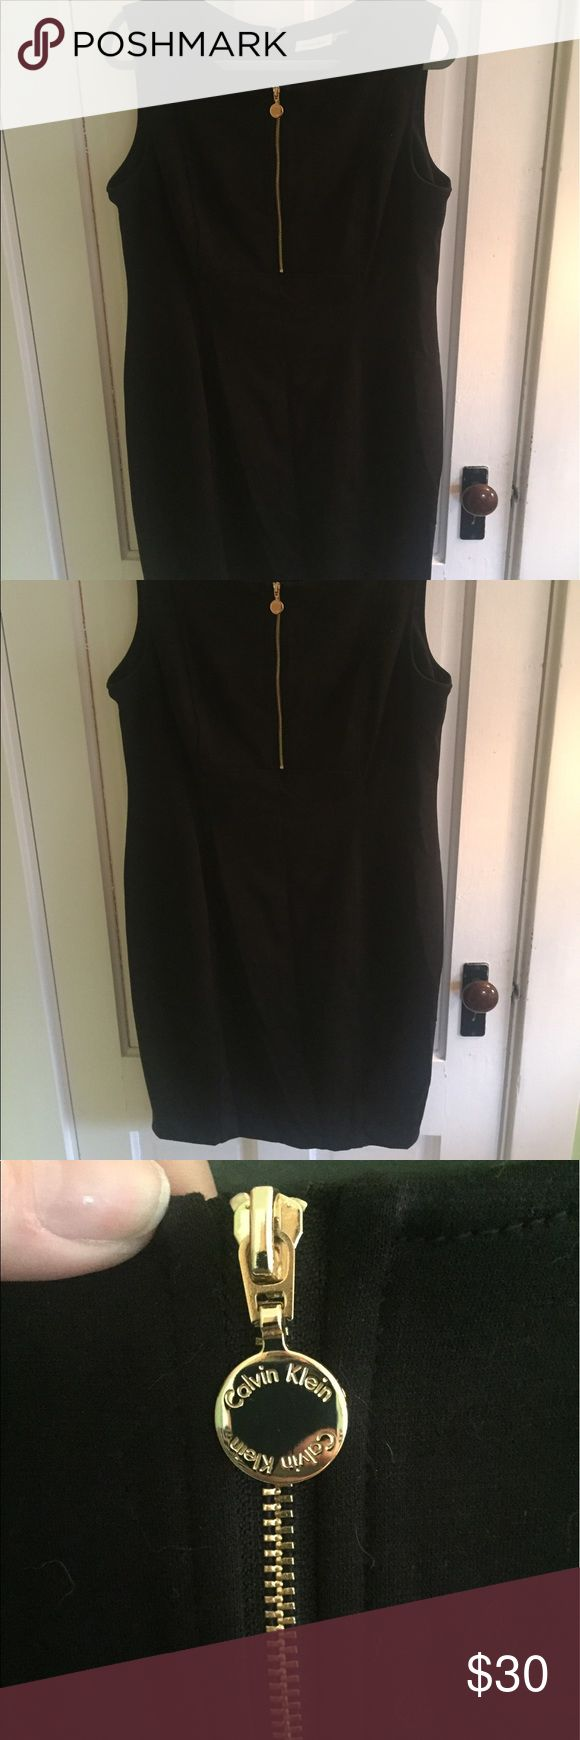 Black Calvin Klein dress with gold zipper This is a lovely black dress. Perfect for work and going out! Only worn once and in perfect condition. Great length for work, but the gold zipper adds a little pizzaz! Calvin Klein Dresses